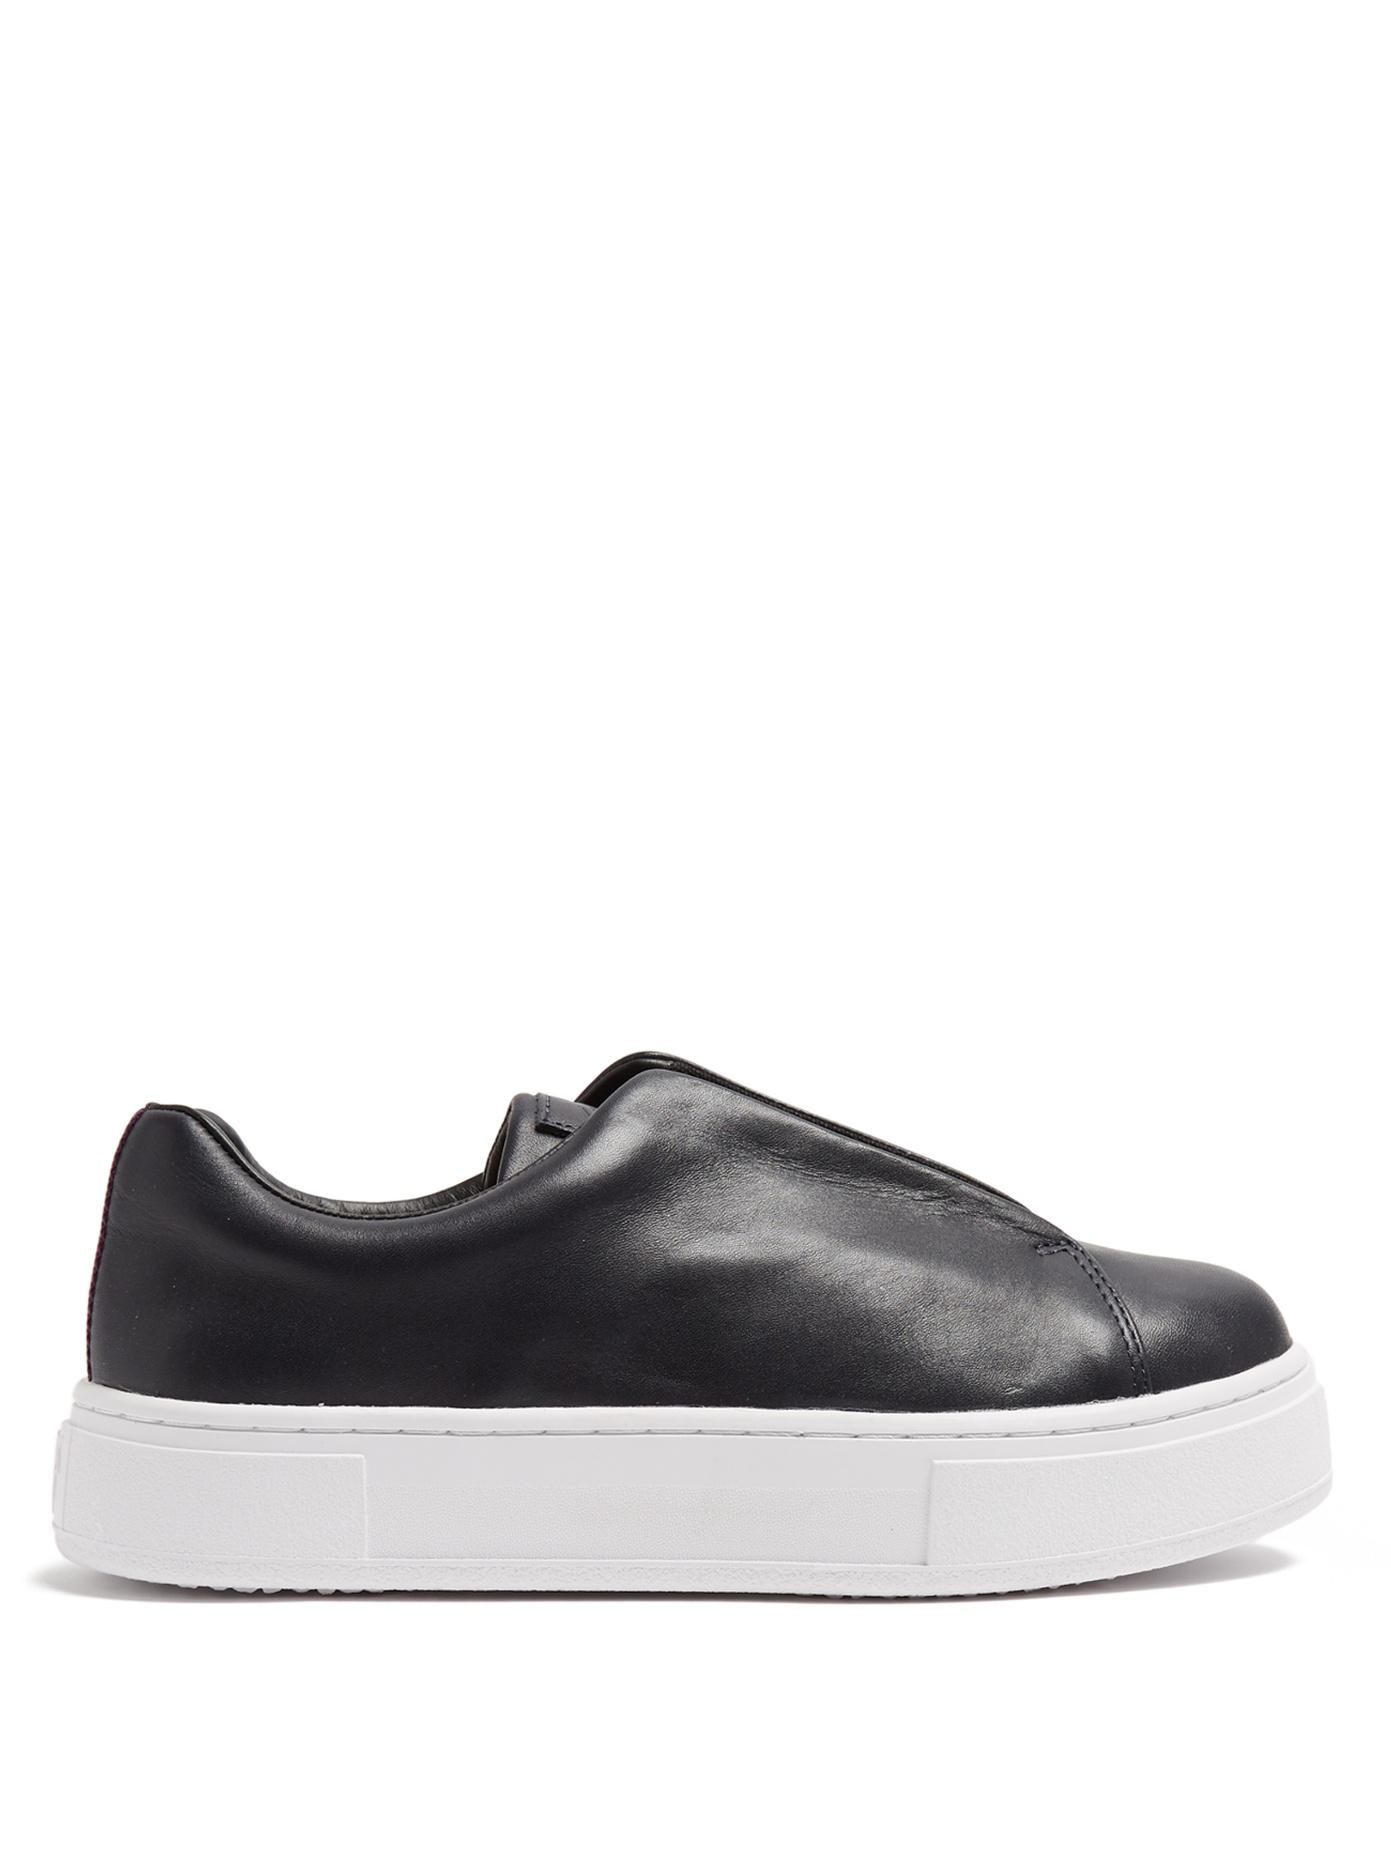 Eytys Doja Slip-on Leather Trainers In Navy